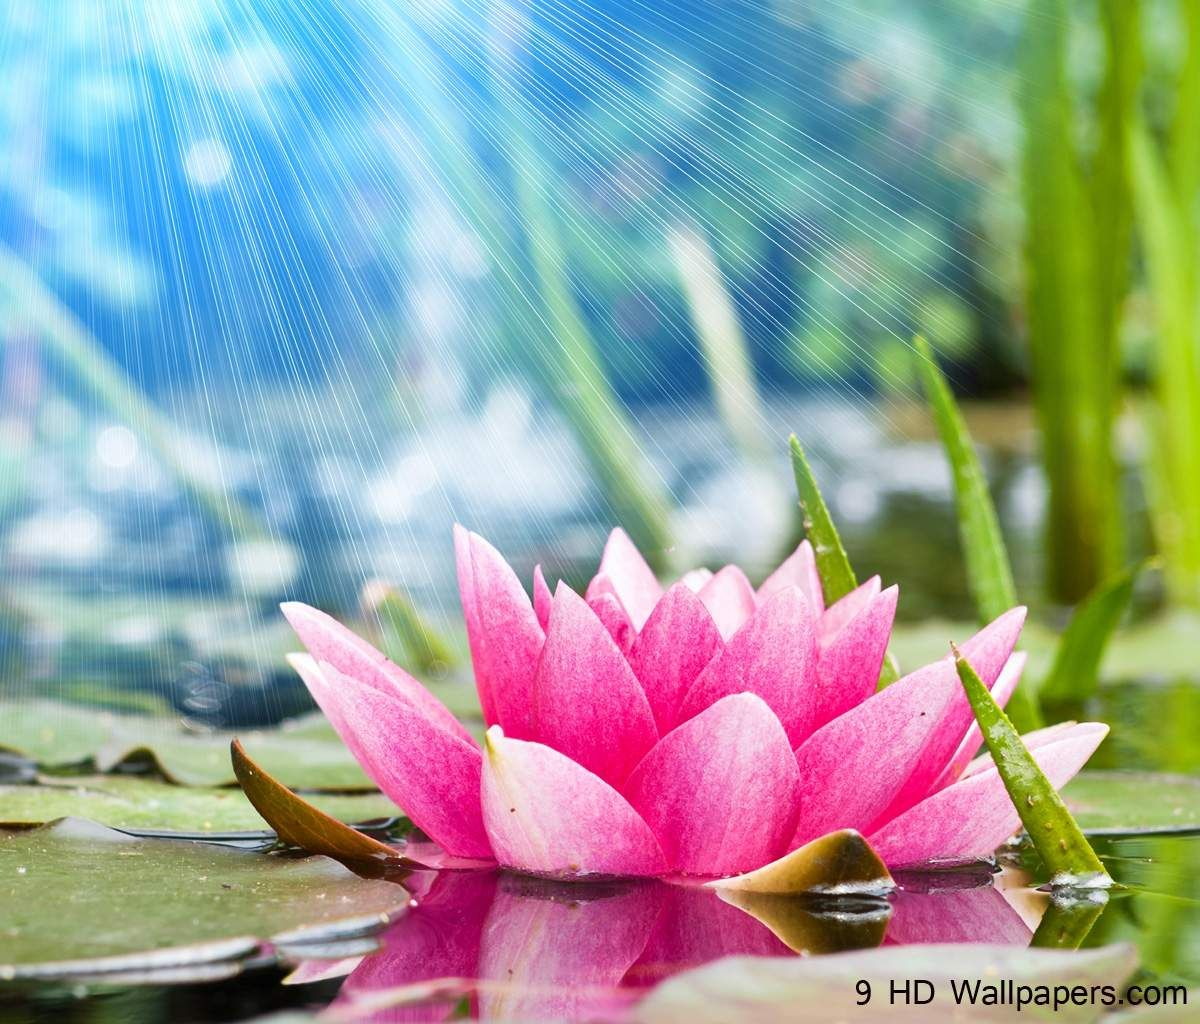 Flower Wallpaper: Lotus Flower Wallpapers For Android